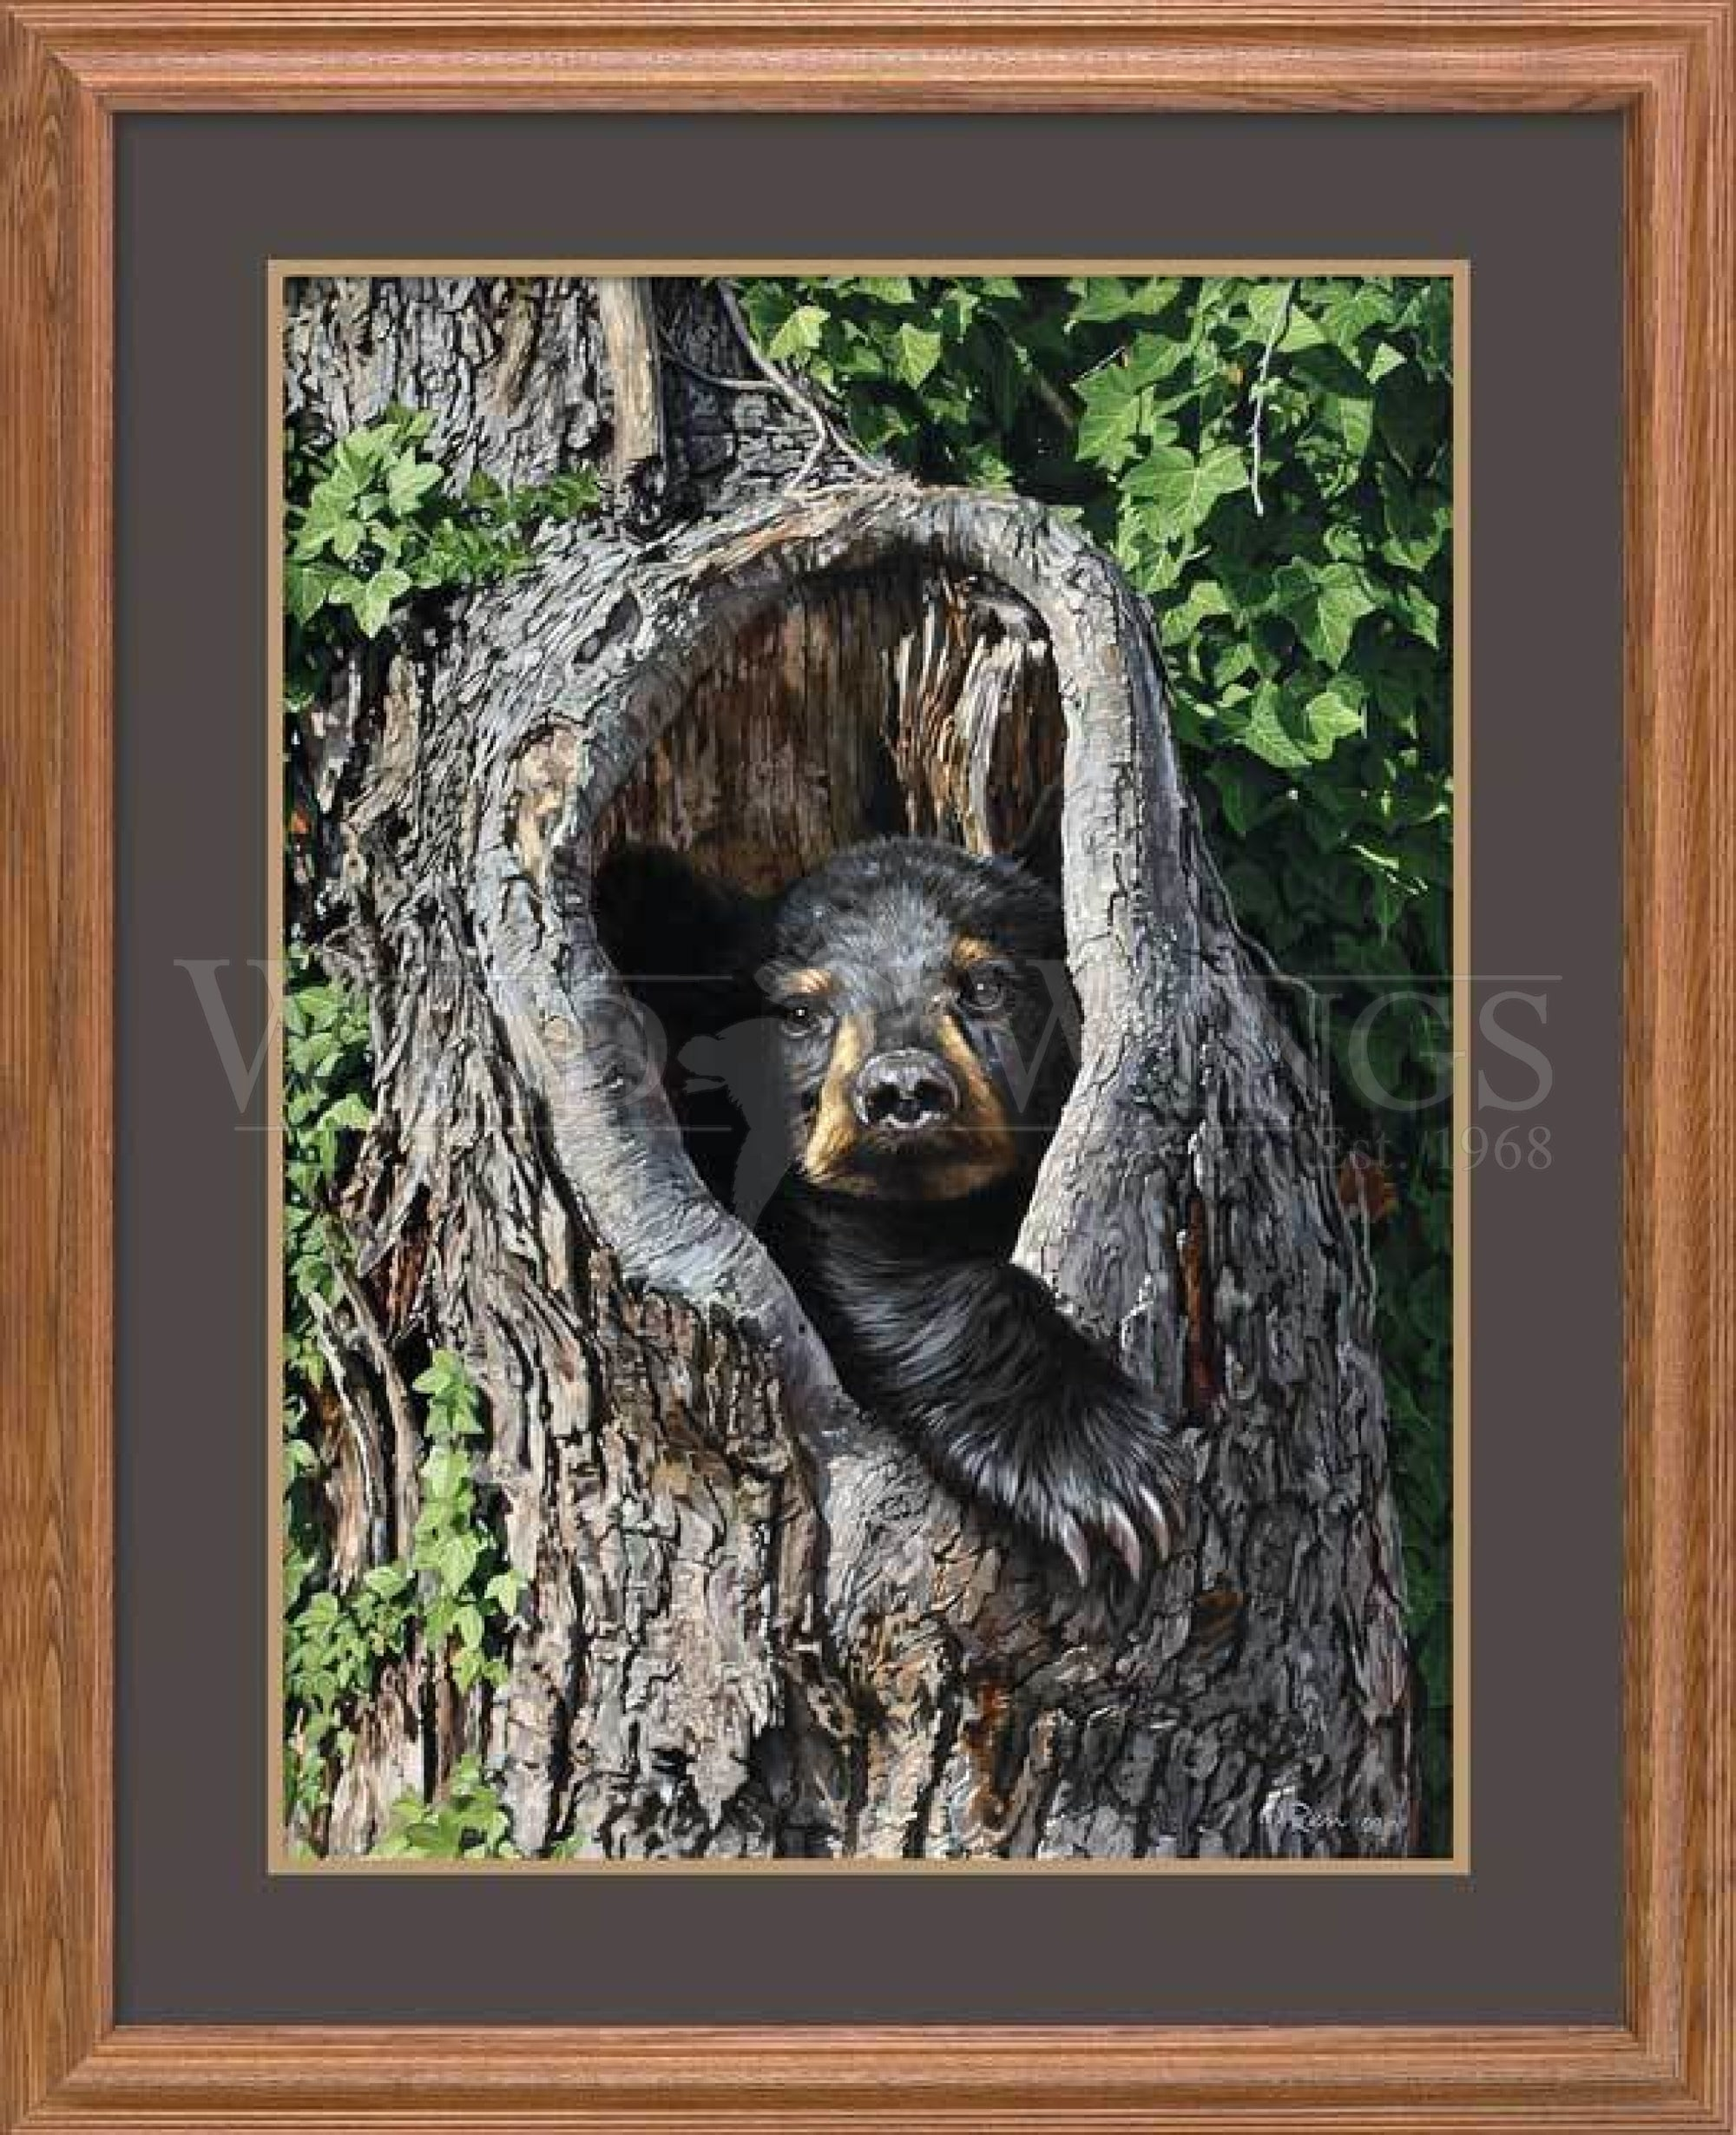 <i>Cubby Hole&mdash;Black Bear</i>